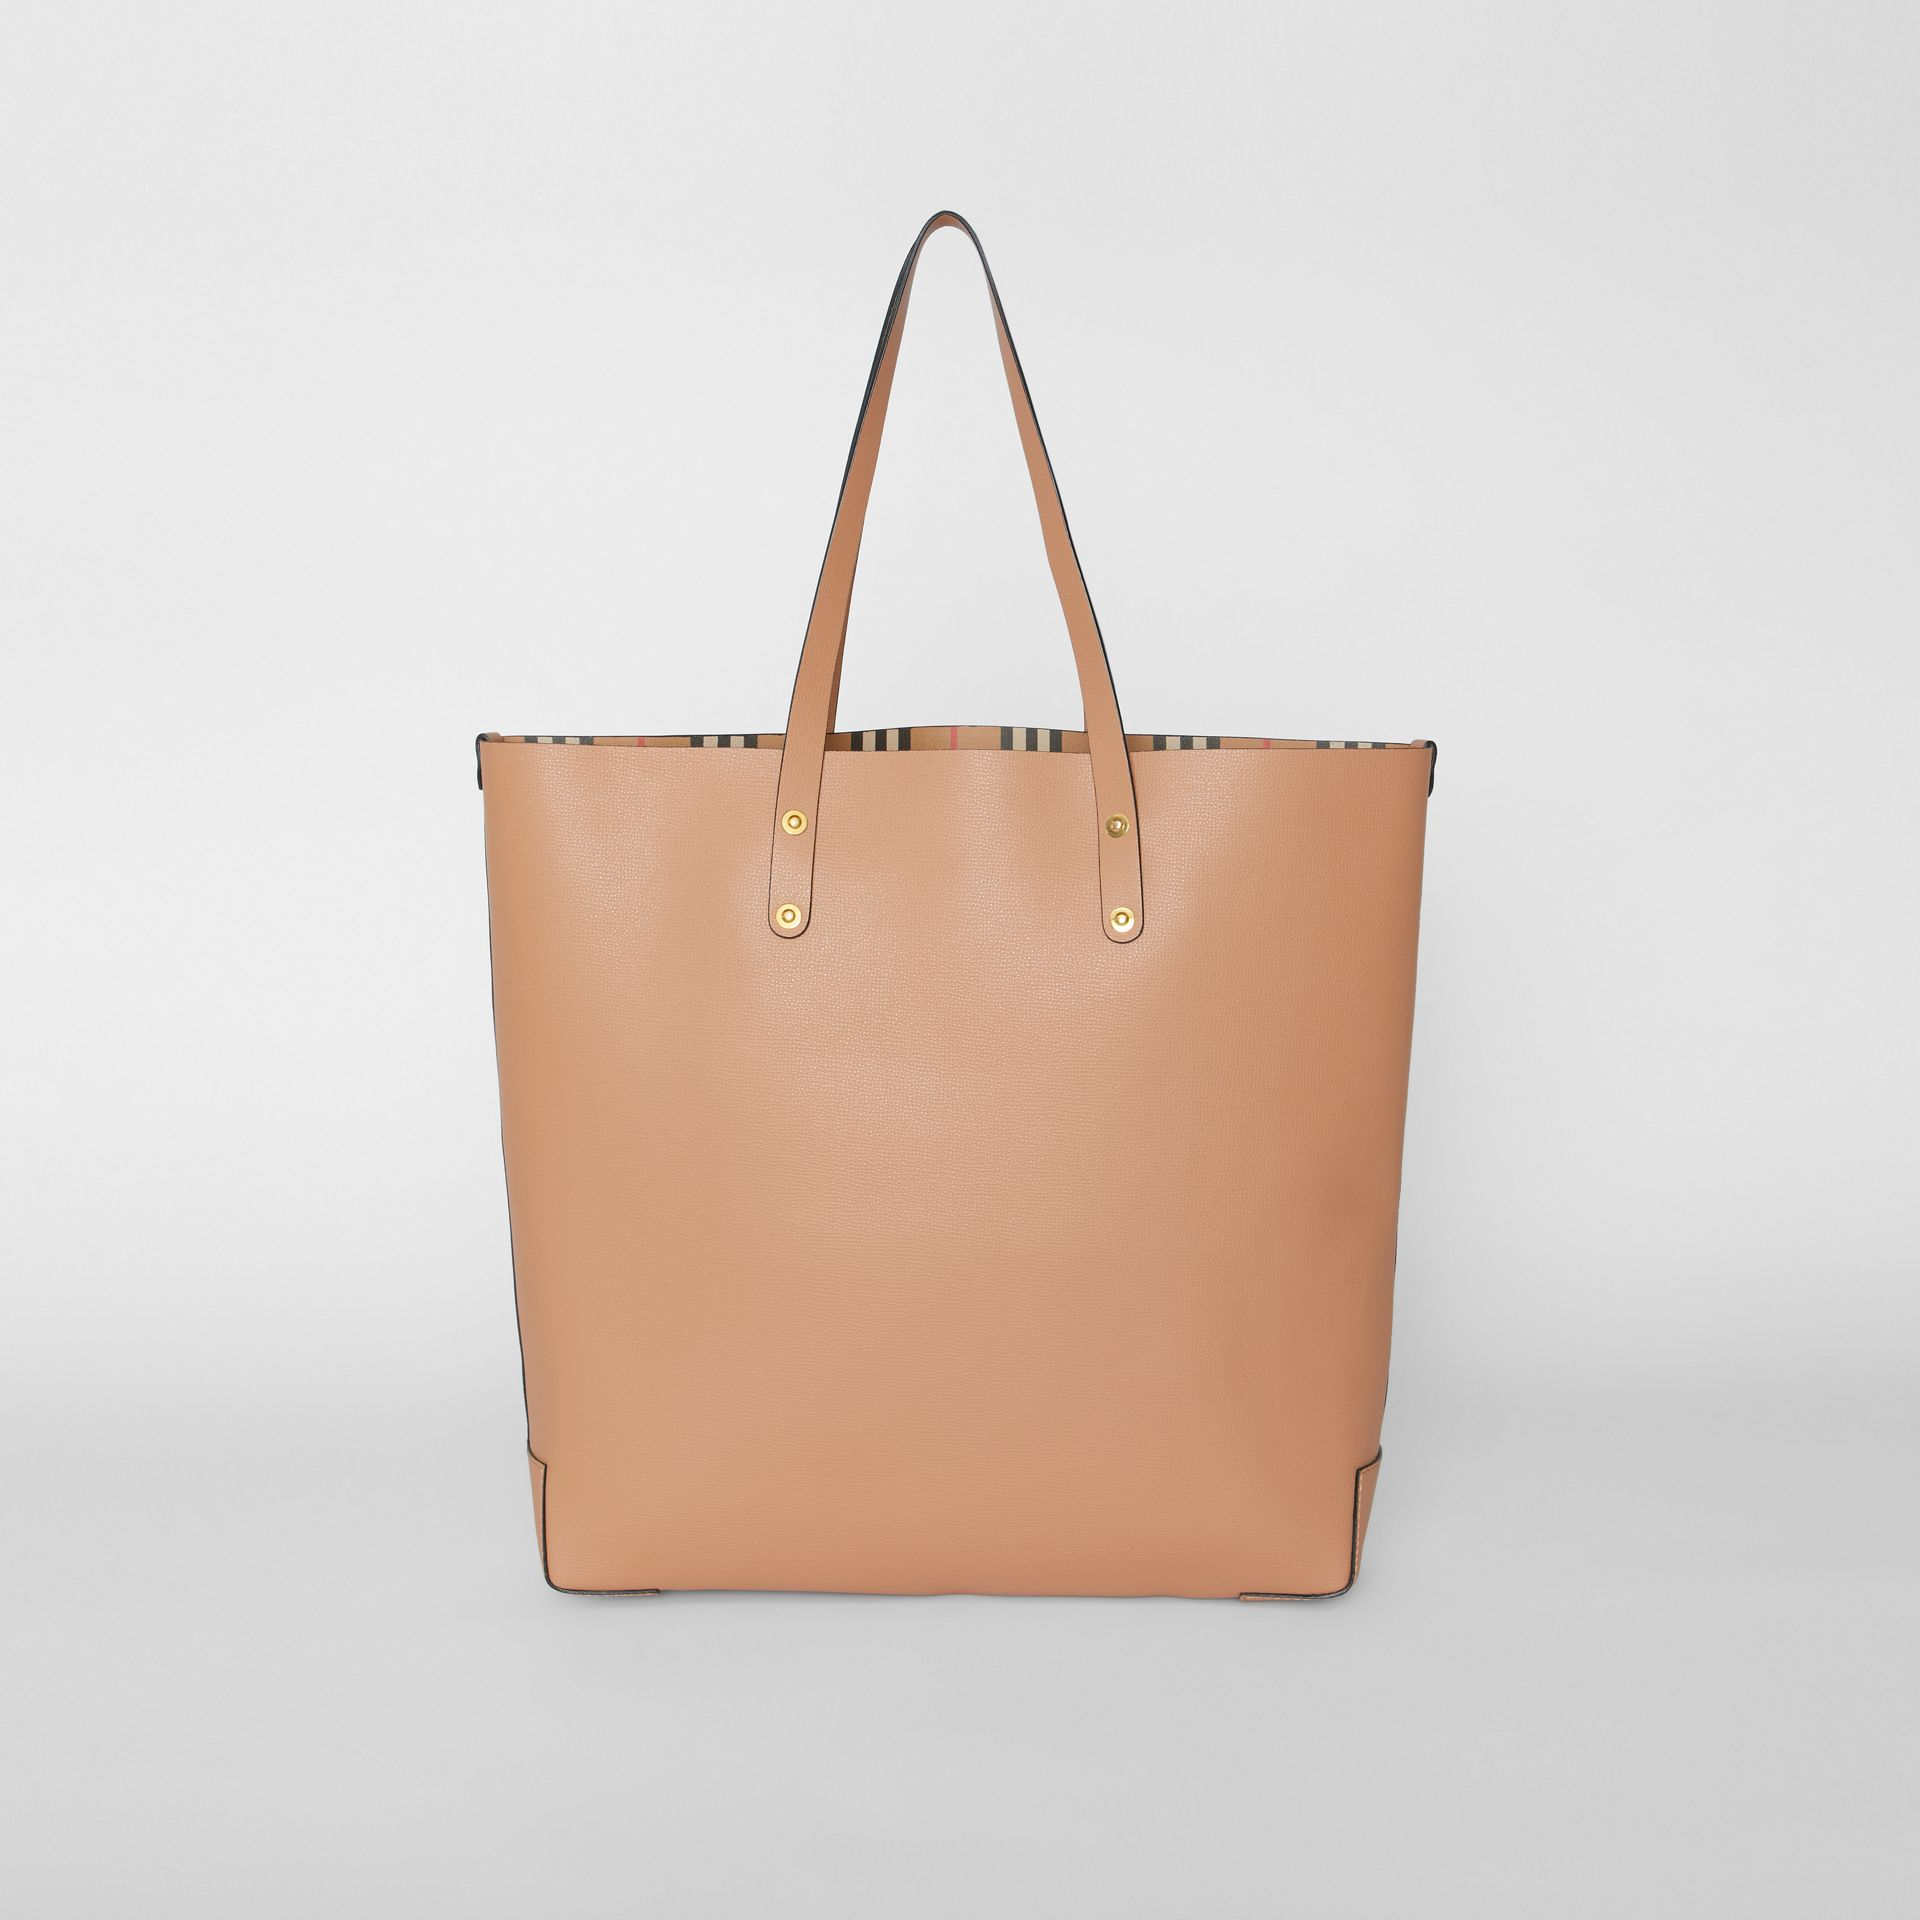 Embossed Crest Leather Tote in Light Camel - Women | Burberry - gallery image 5